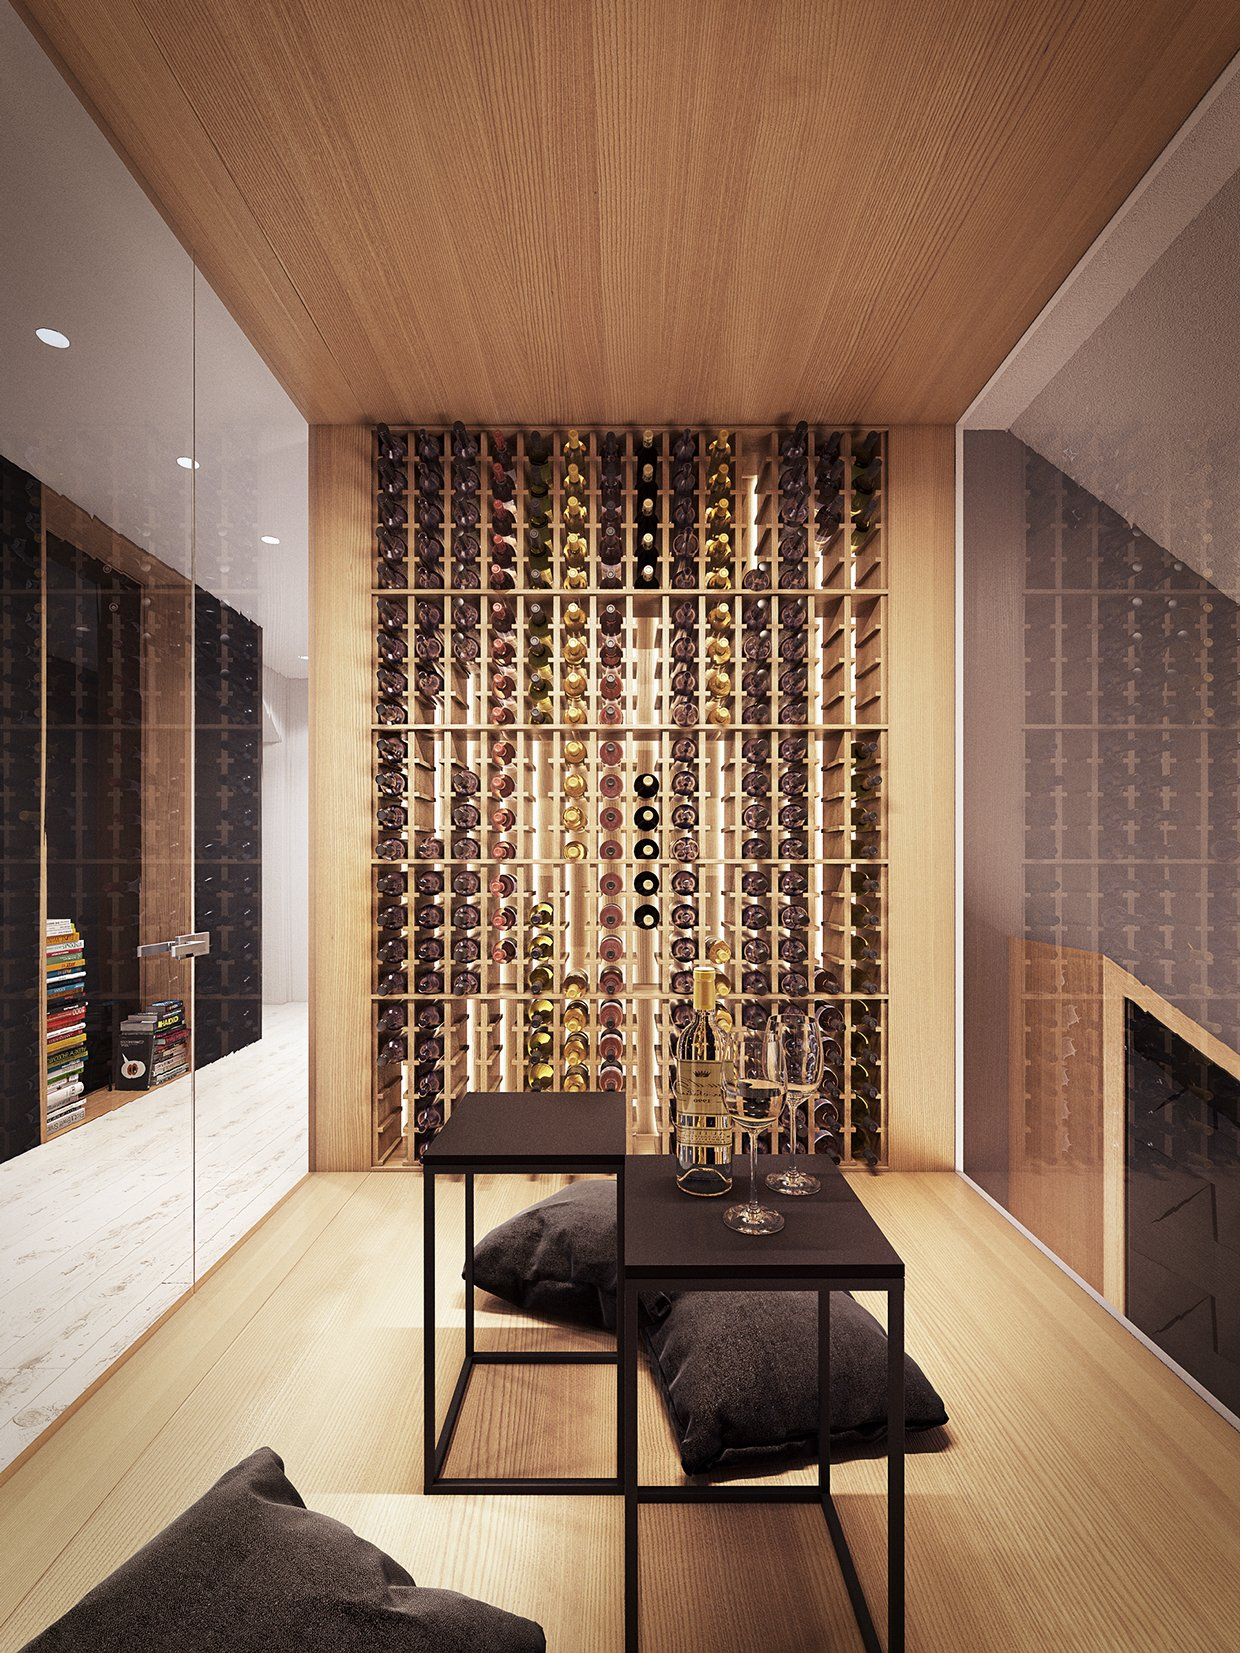 Wine cellar design interior design ideas for Wine cellar design ideas